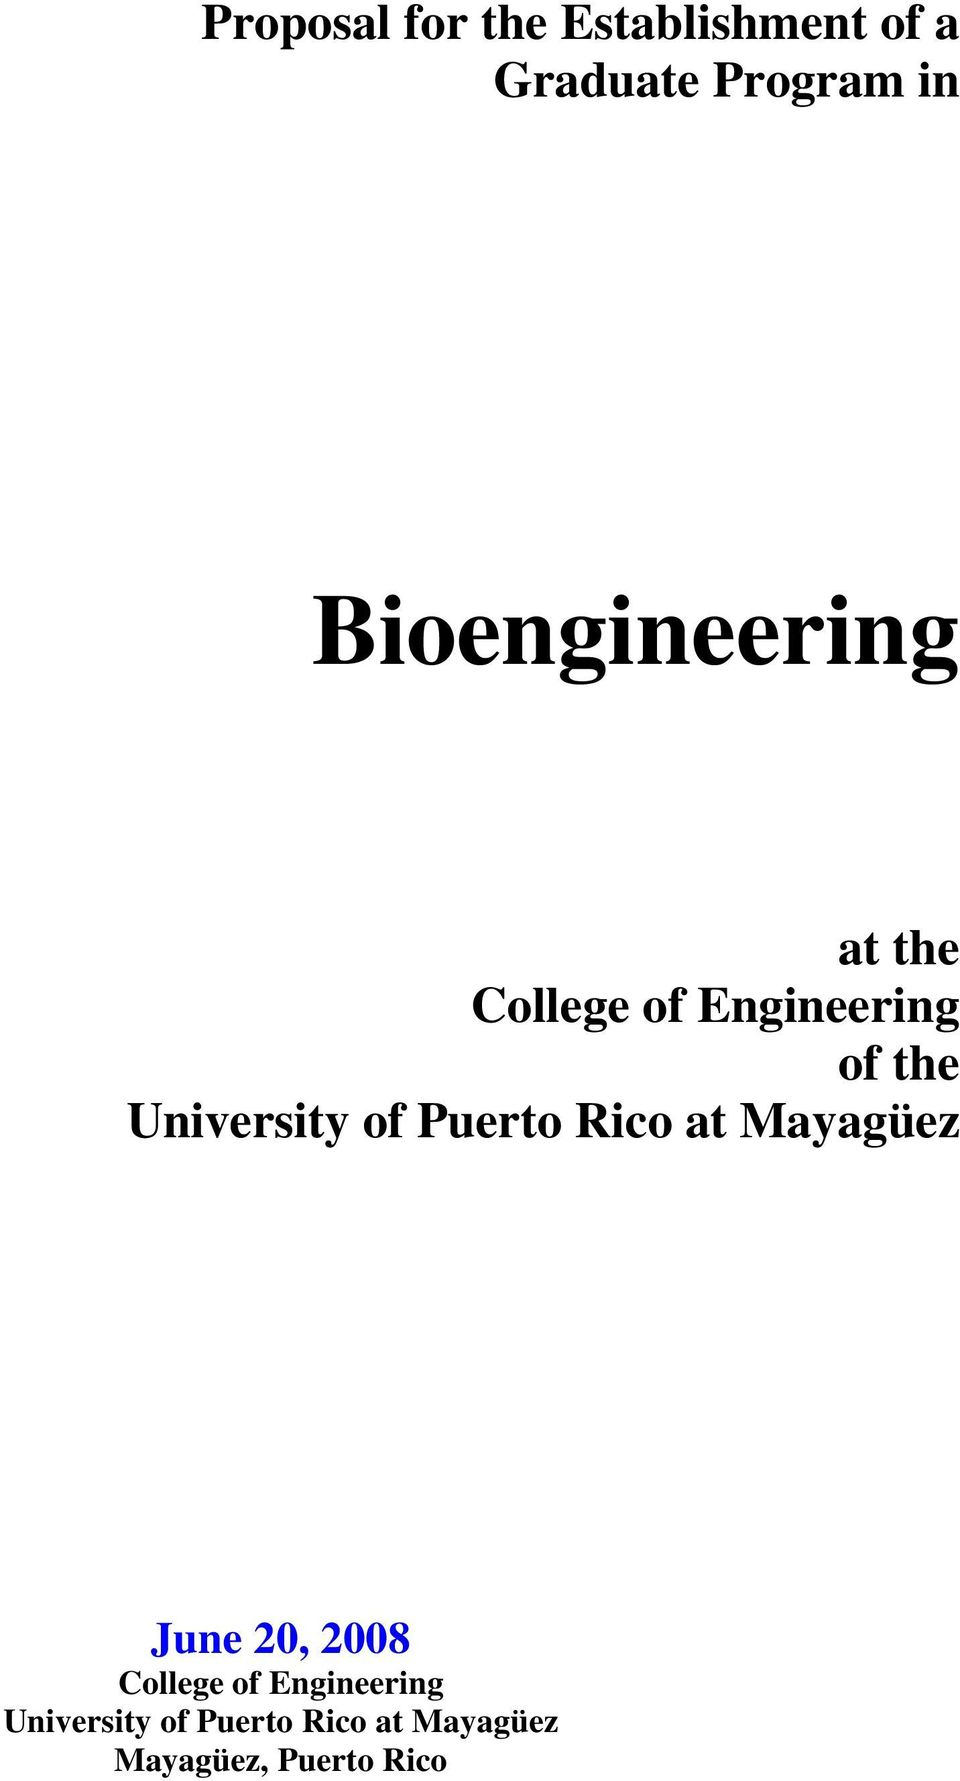 University of Puerto Rico at Mayagüez June 20, 2008 College